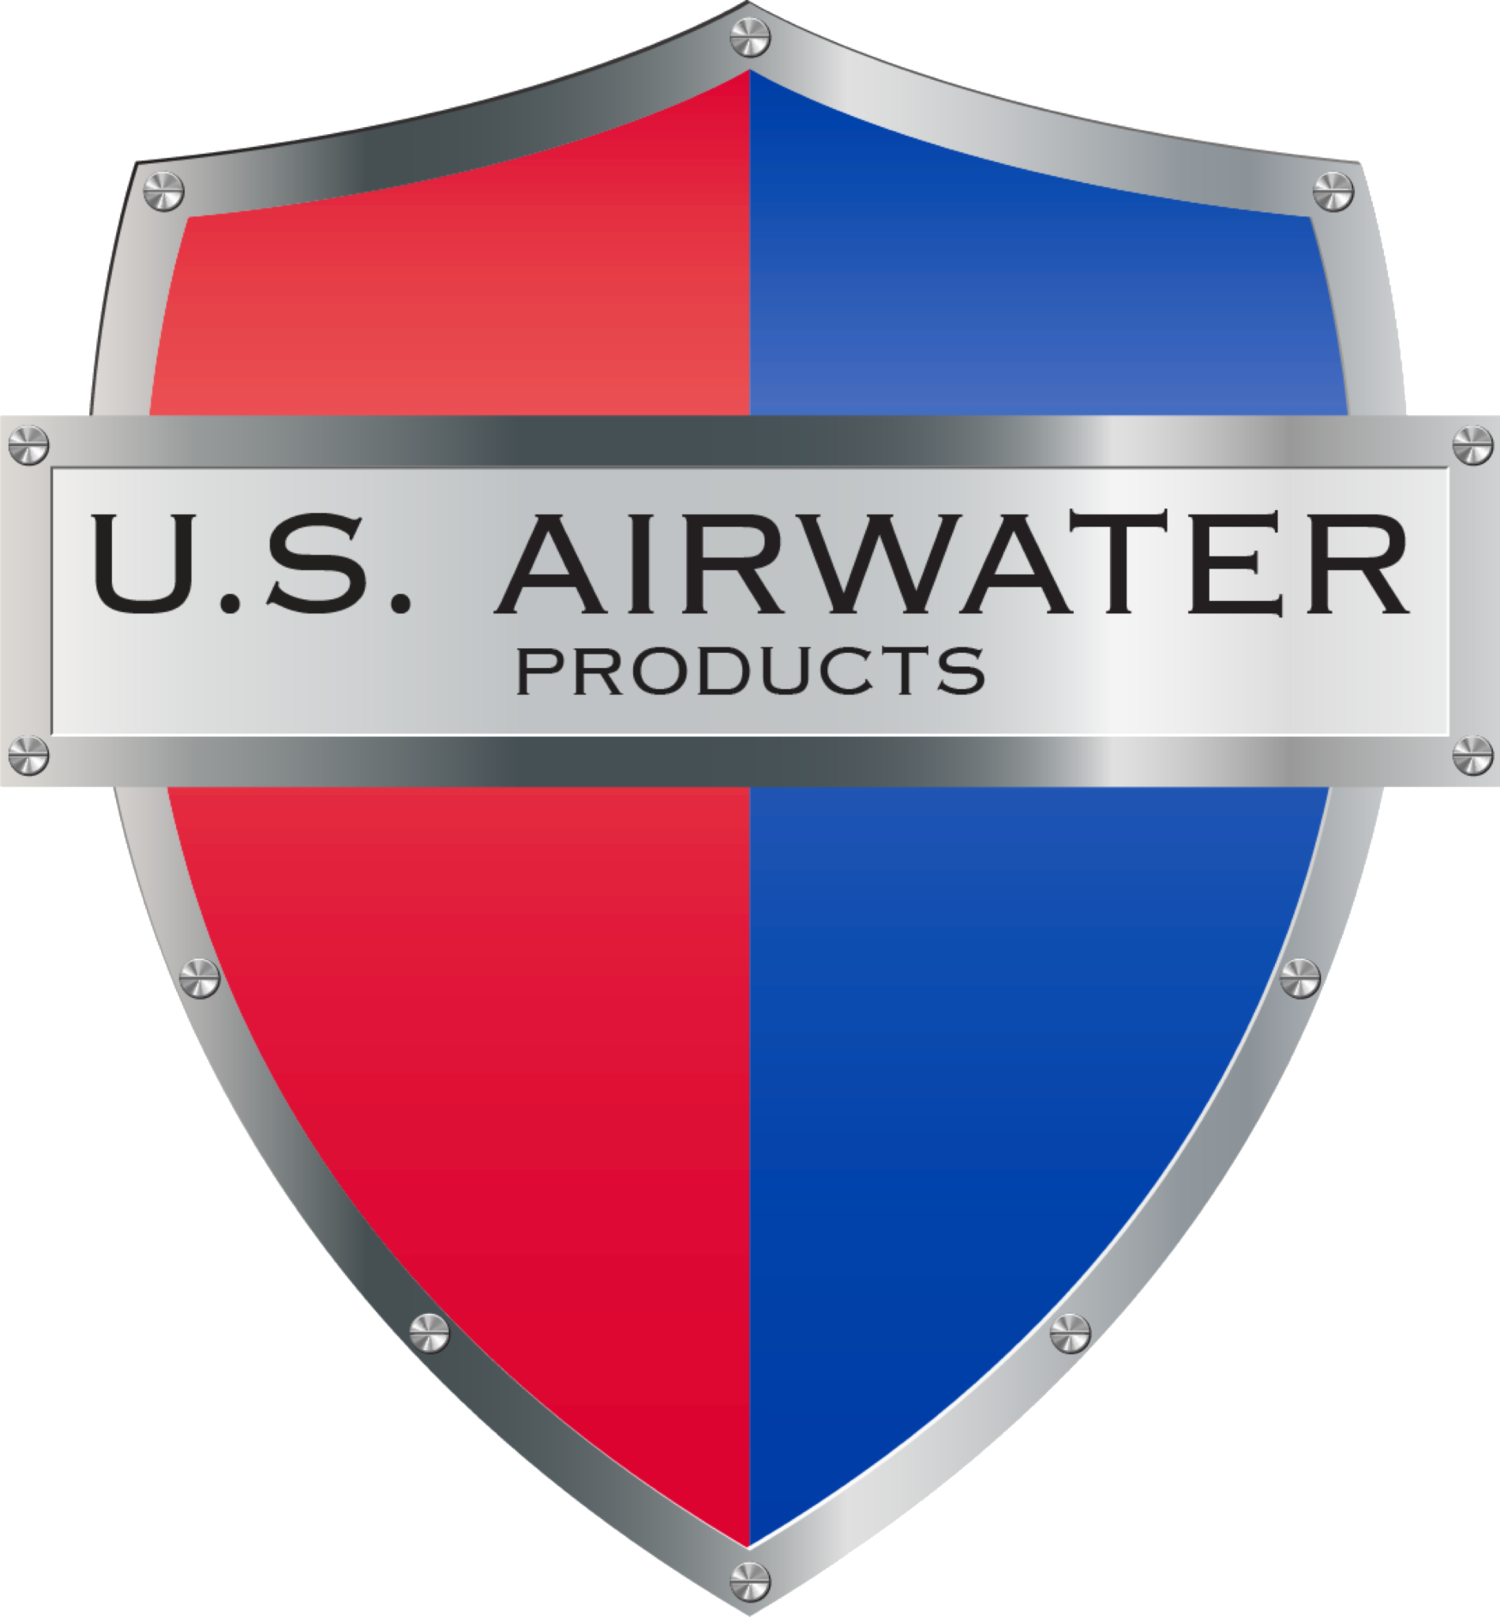 U.S. AirWater Products